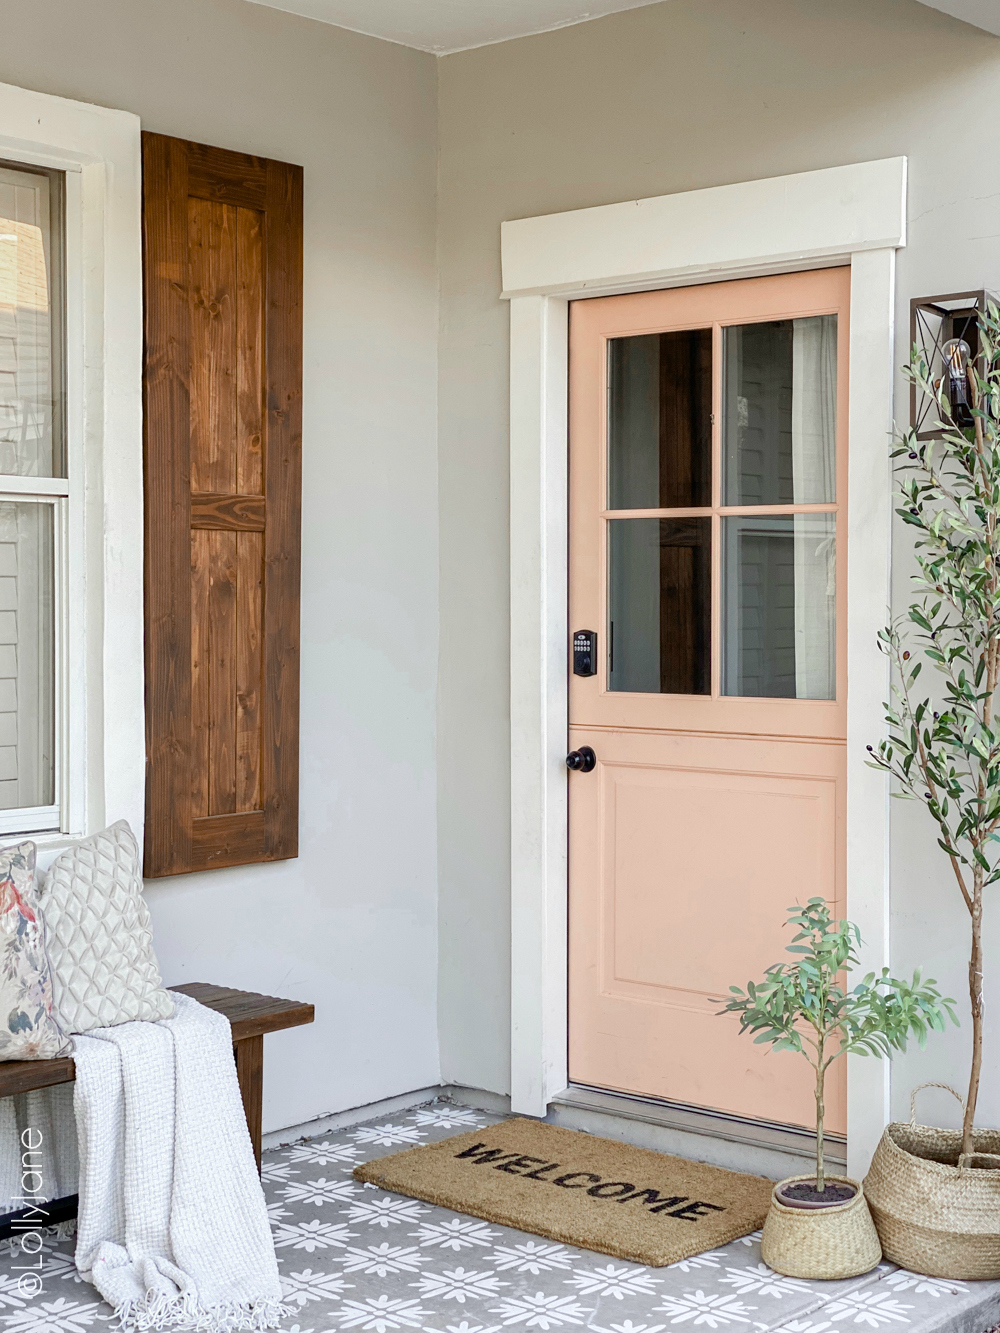 Classic craftsman style home with a pop of pink, so good! GORGEOUS Front Porch Makeover, check out the before-- WOW! #diy #stencil #Dutchdoor #pinkdoor #makeover #porchdecor #porchmakeover